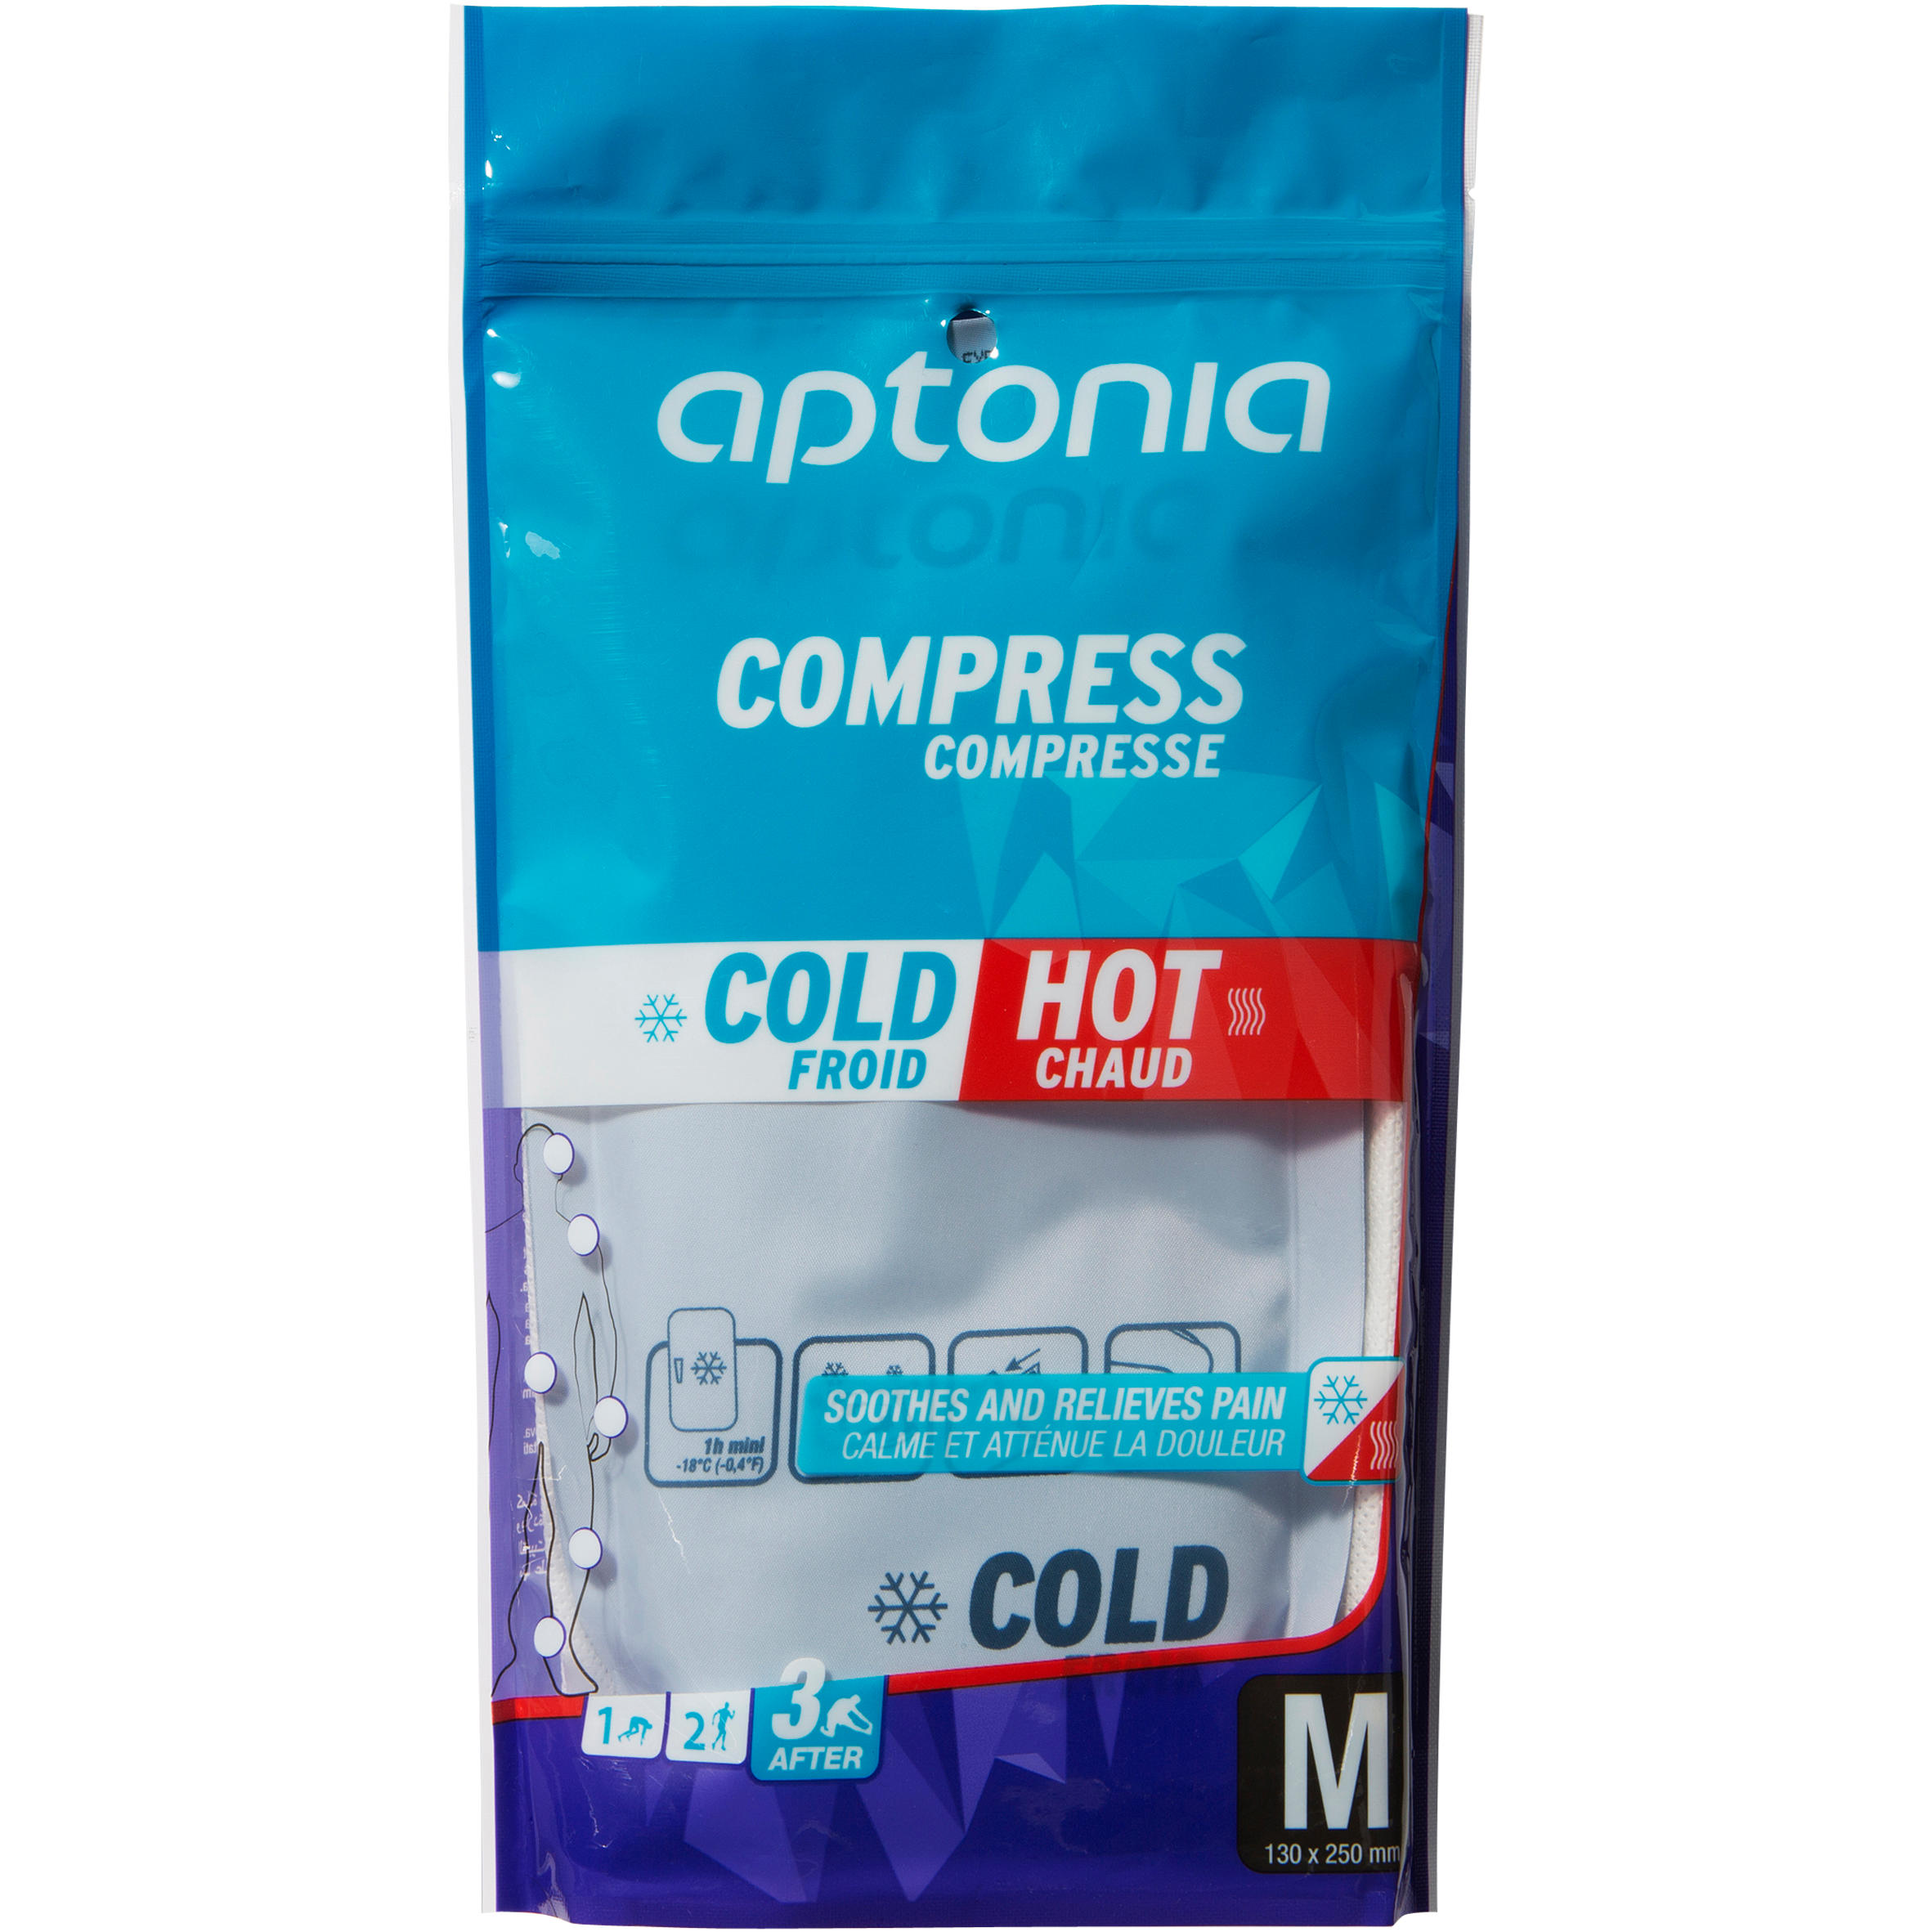 Compresse chaud/froid taille M